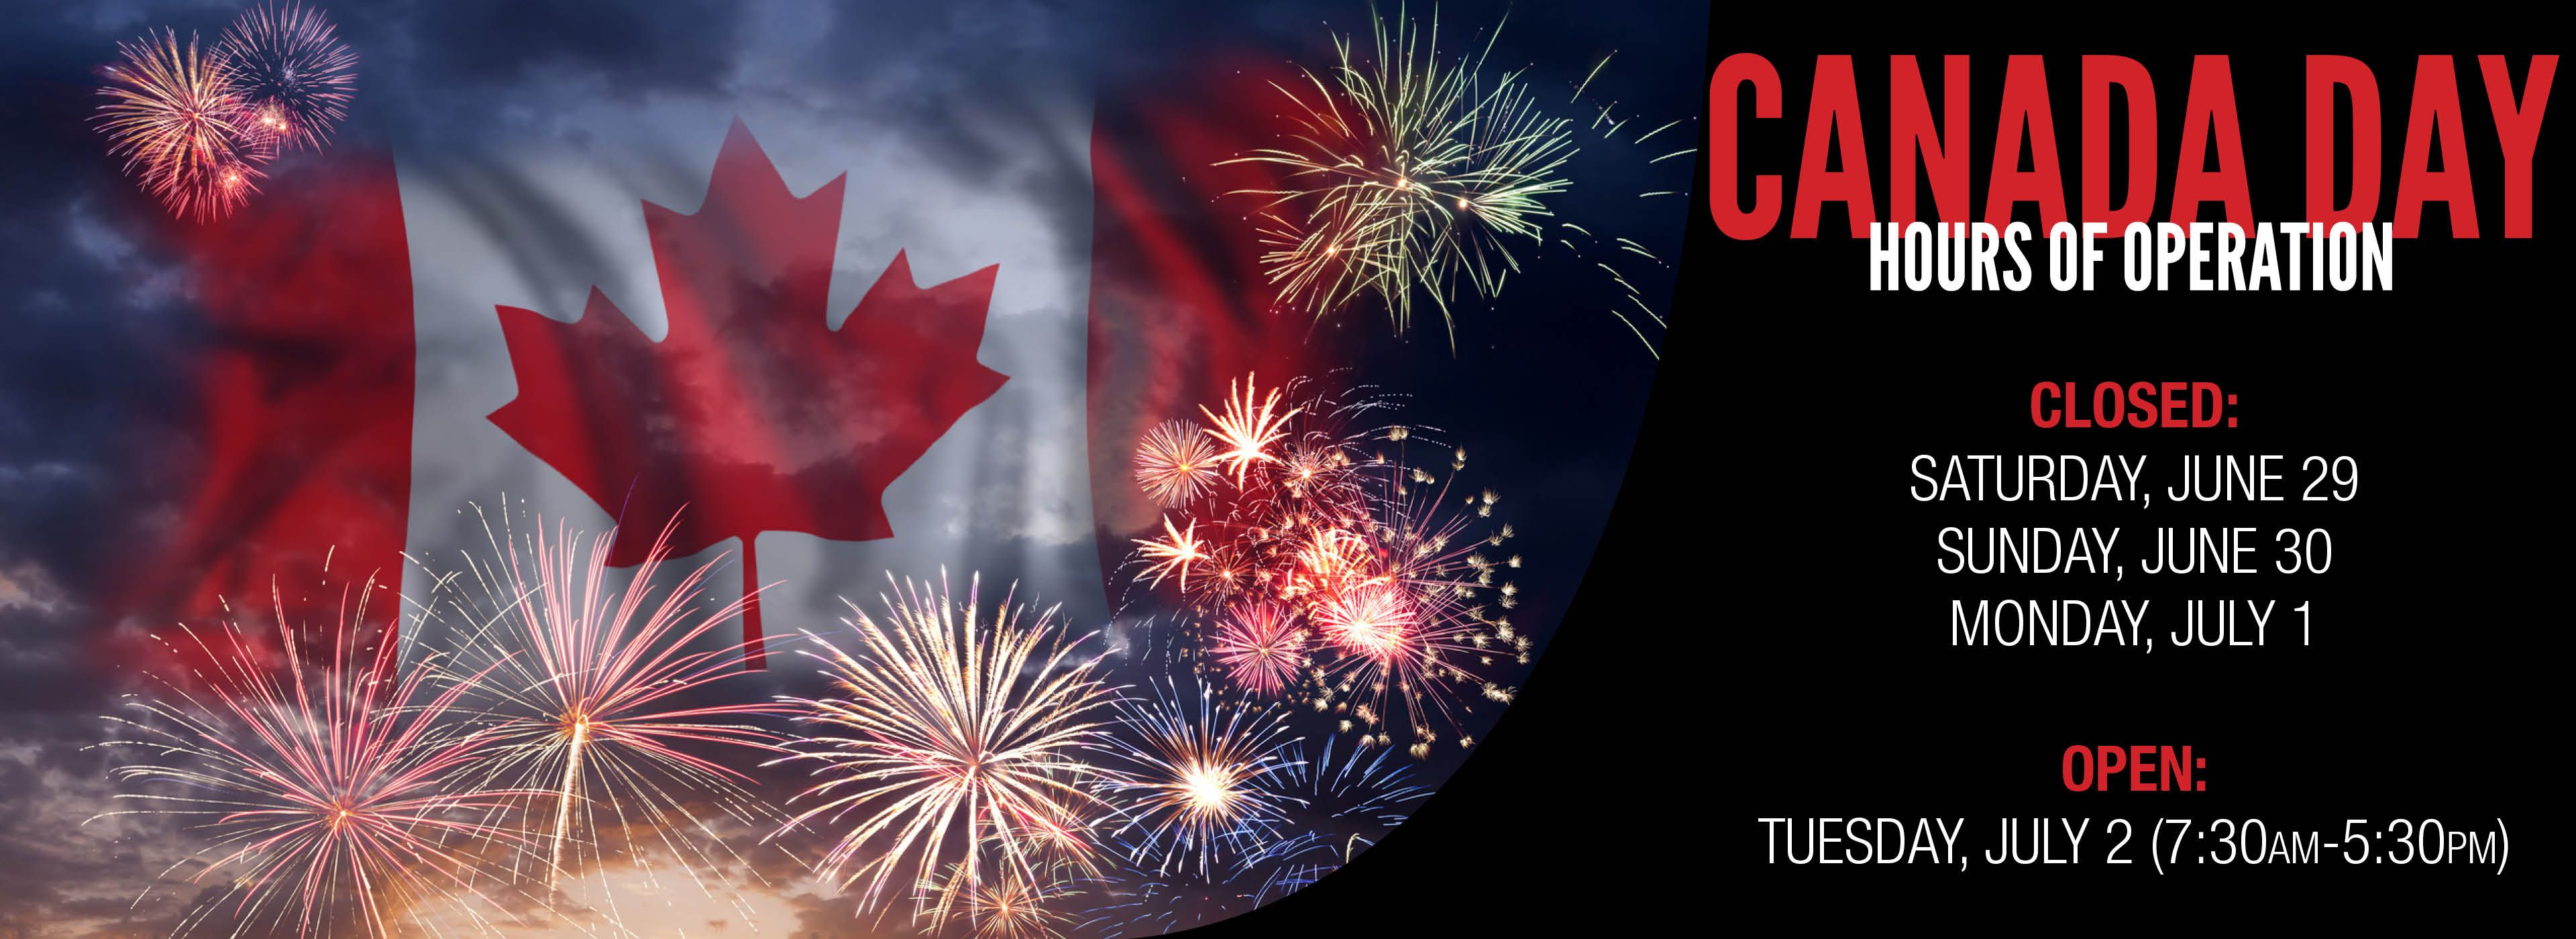 Canada Day Hours Kooy Brothers